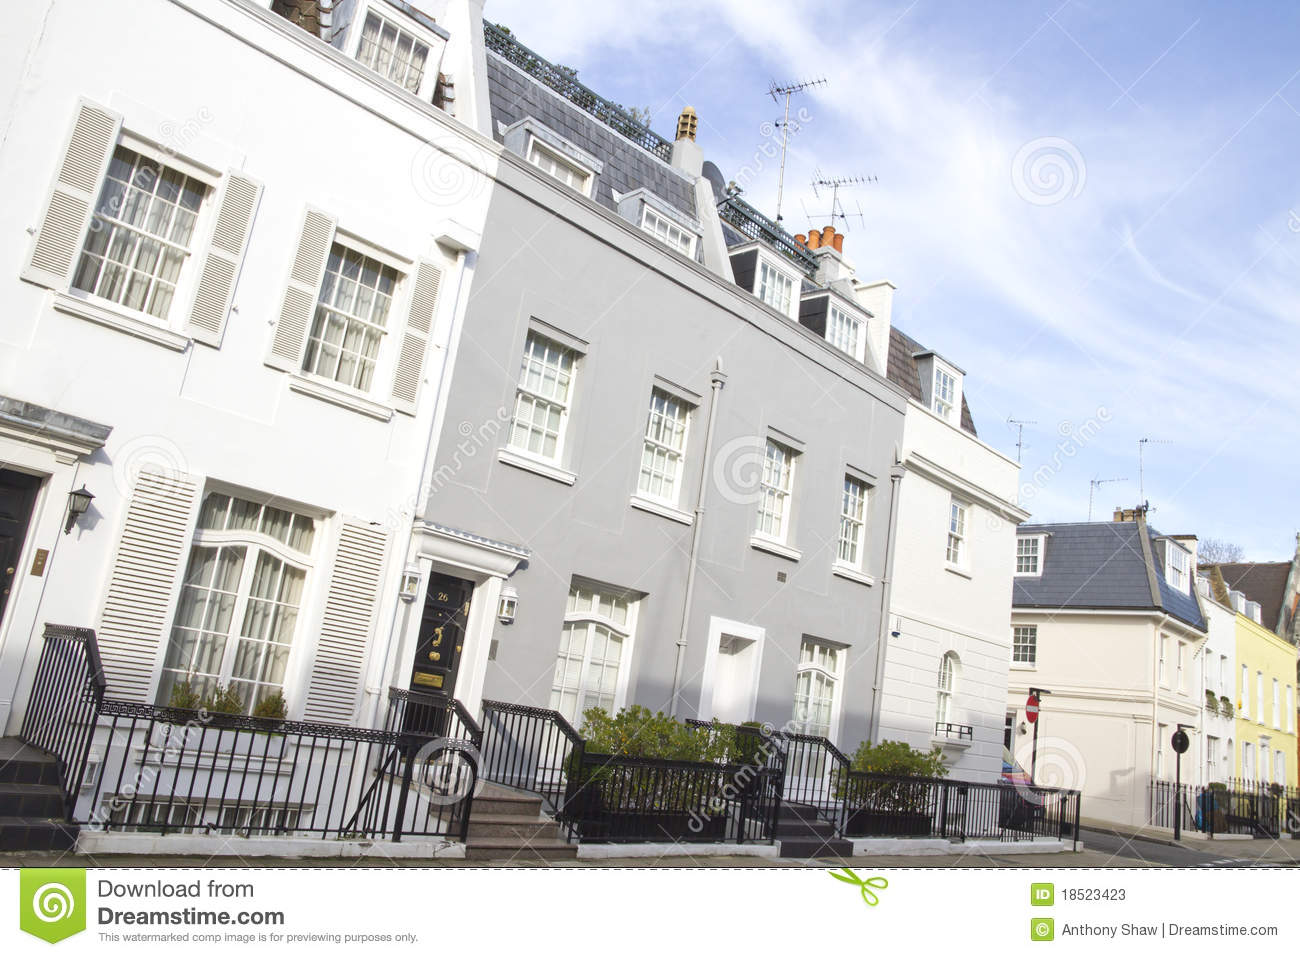 Houses in knightsbridge london stock photos image 18523423 for Knightsbridge homes